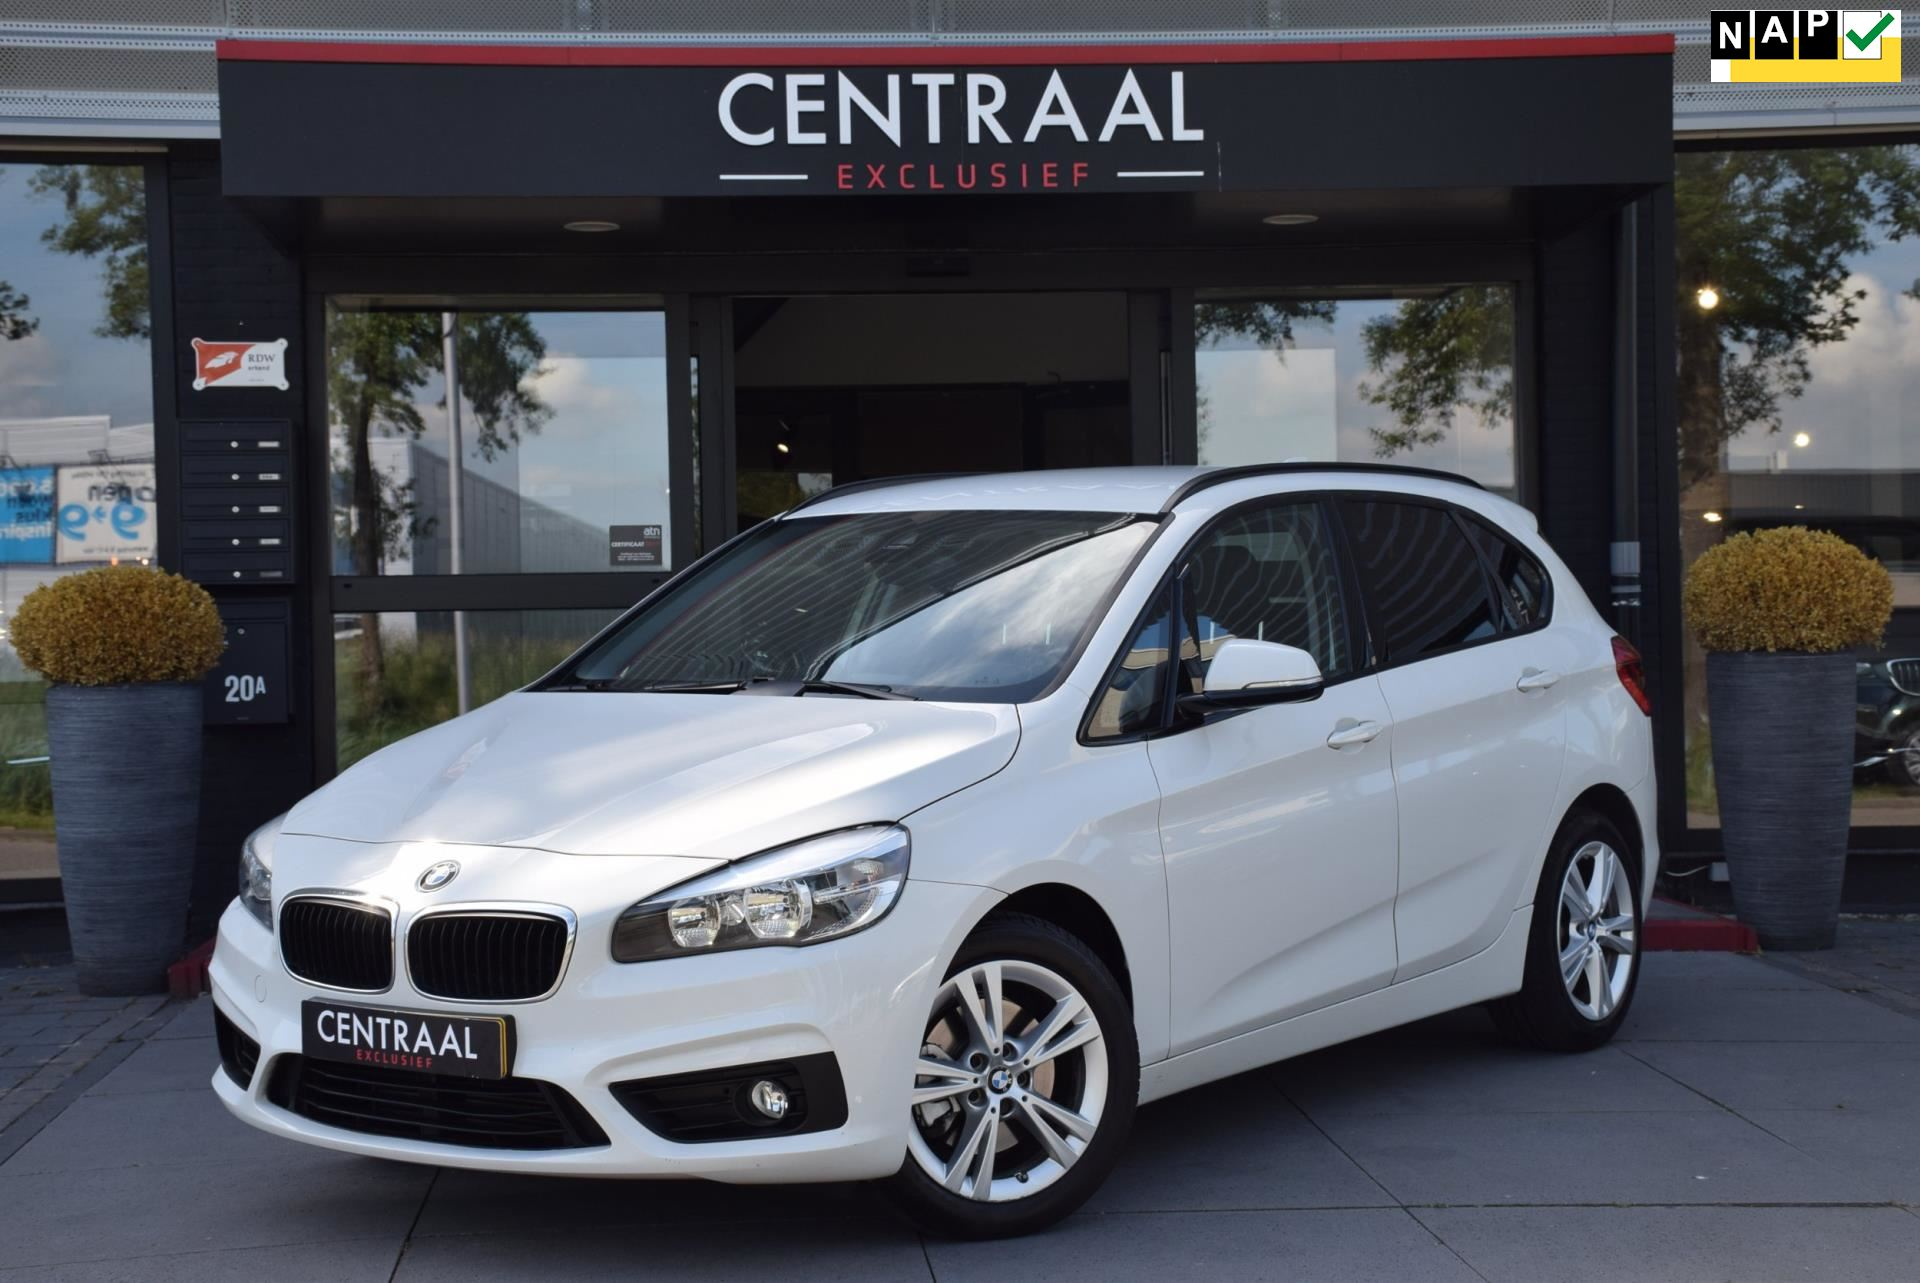 BMW 2-serie Active Tourer occasion - Centraal Exclusief B.V.